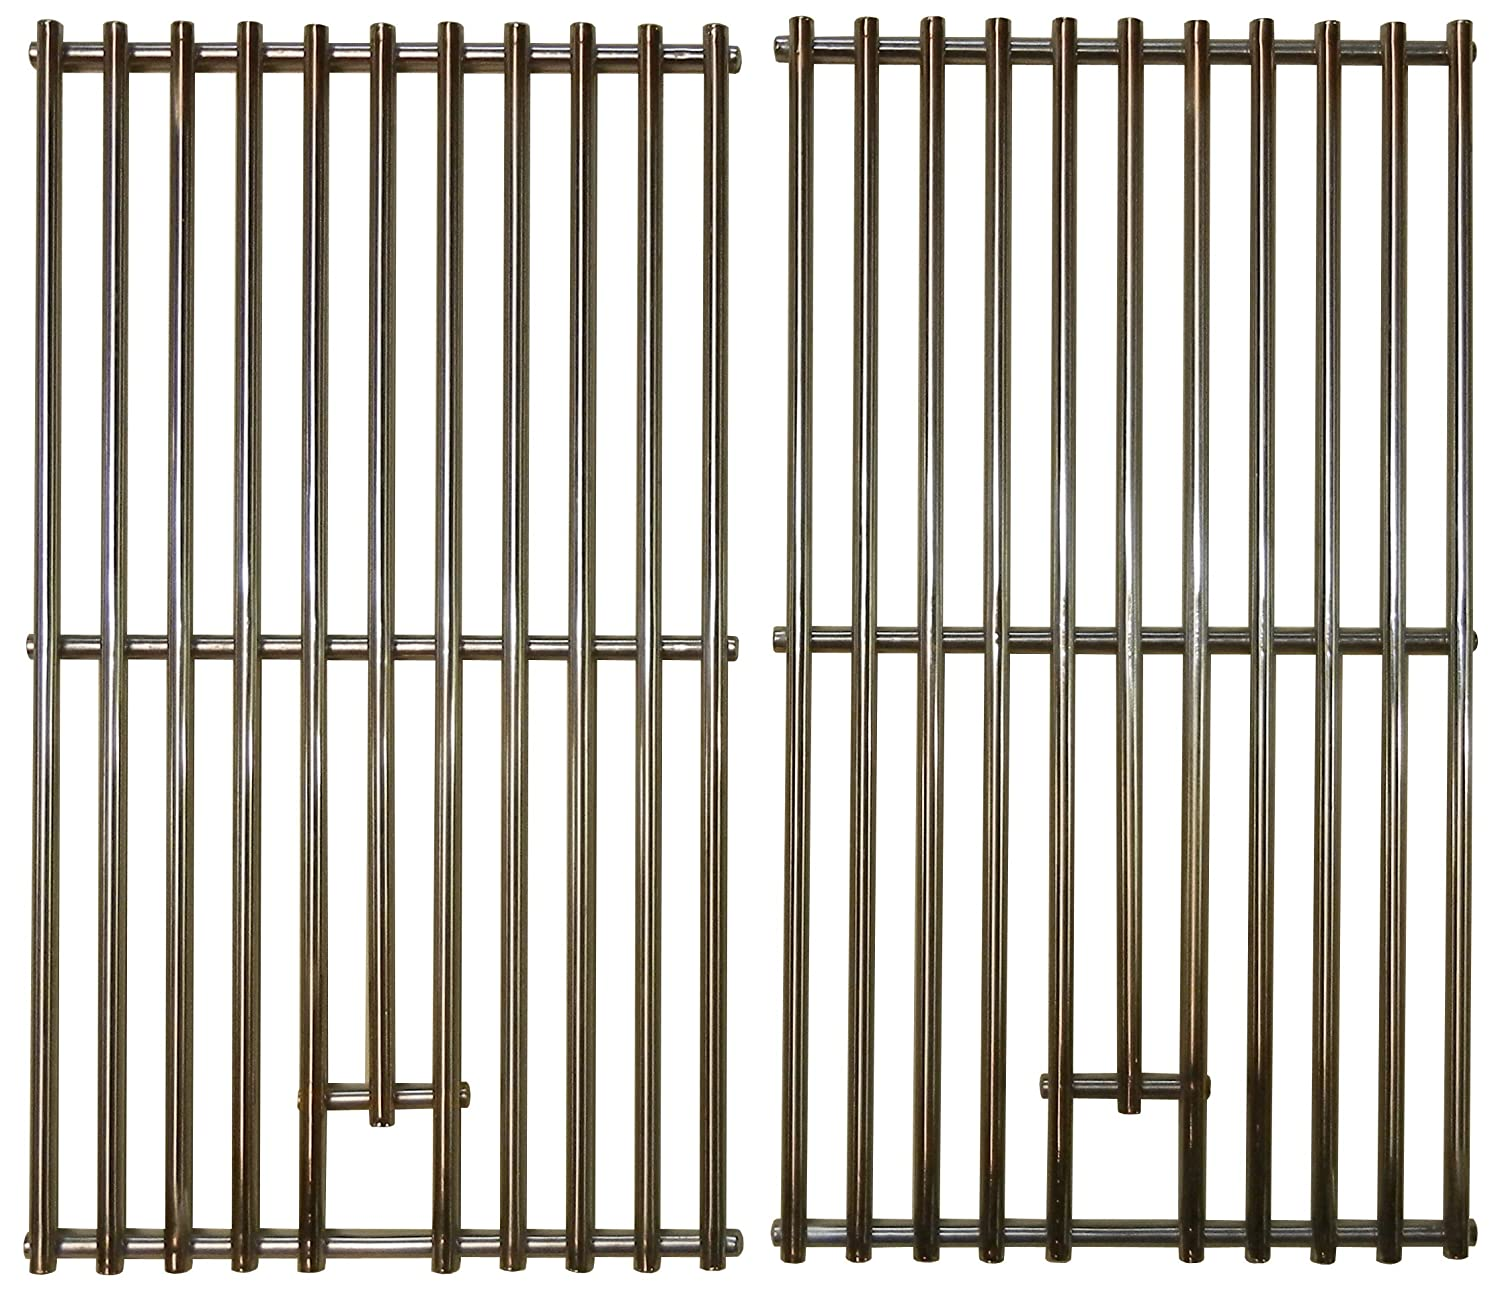 Music City Metals Stainless Steel Wire Cooking Grid Replacement for Gas Grill NXR 780-0009, Set of 2 5S382